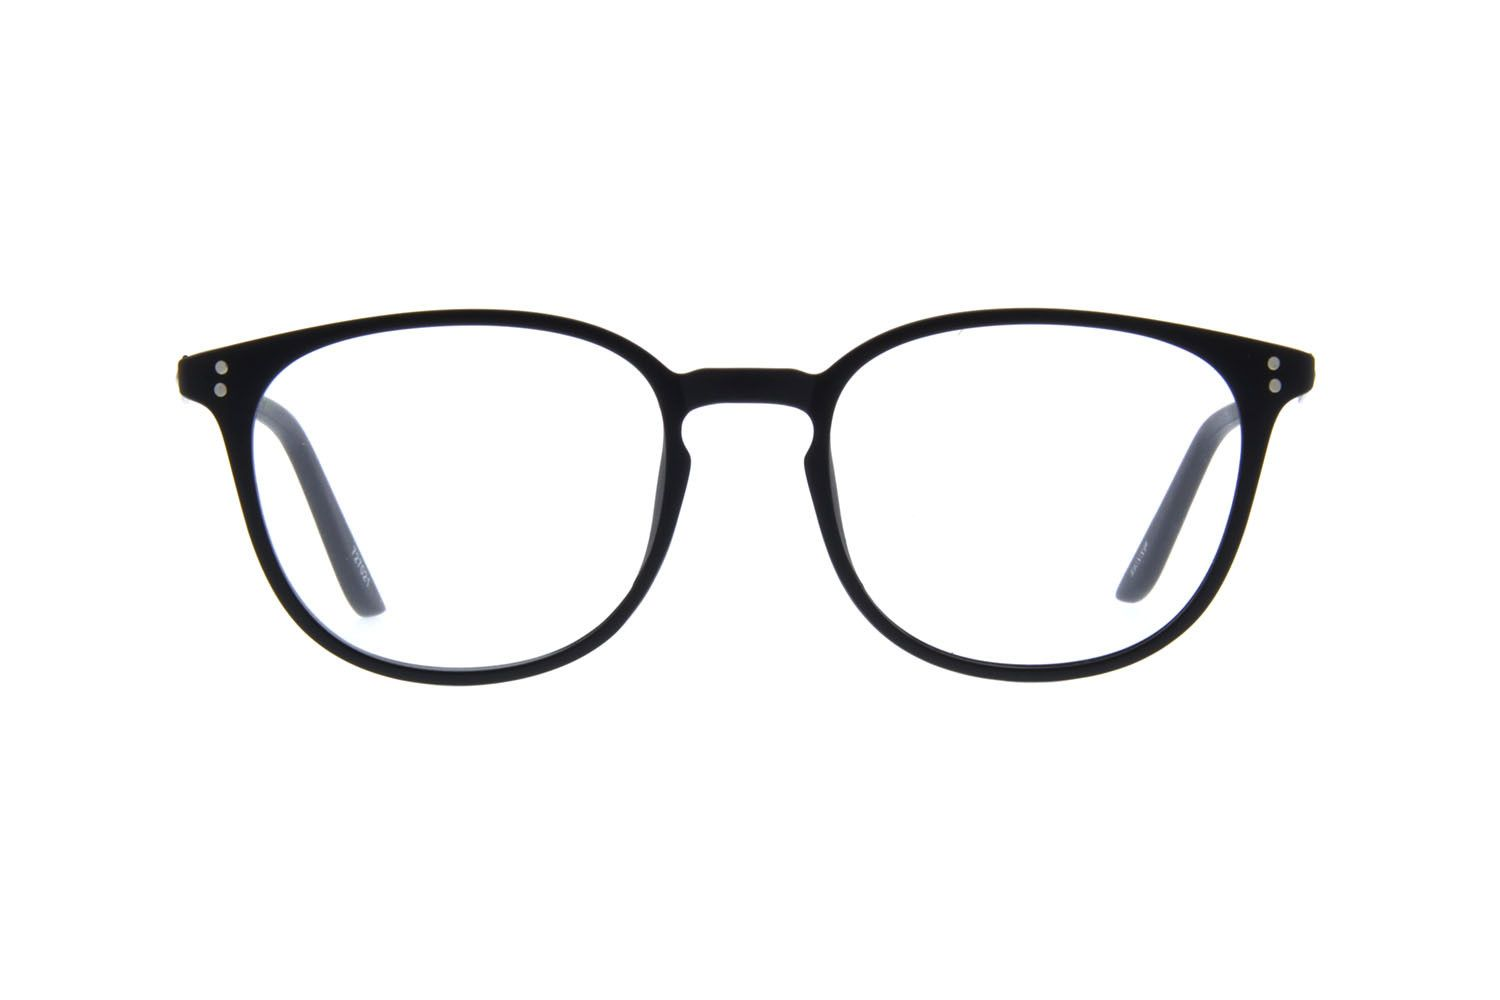 b31993a0981 Zenni Womens Round Prescription Eyeglasses Black Plastic 727021 ...